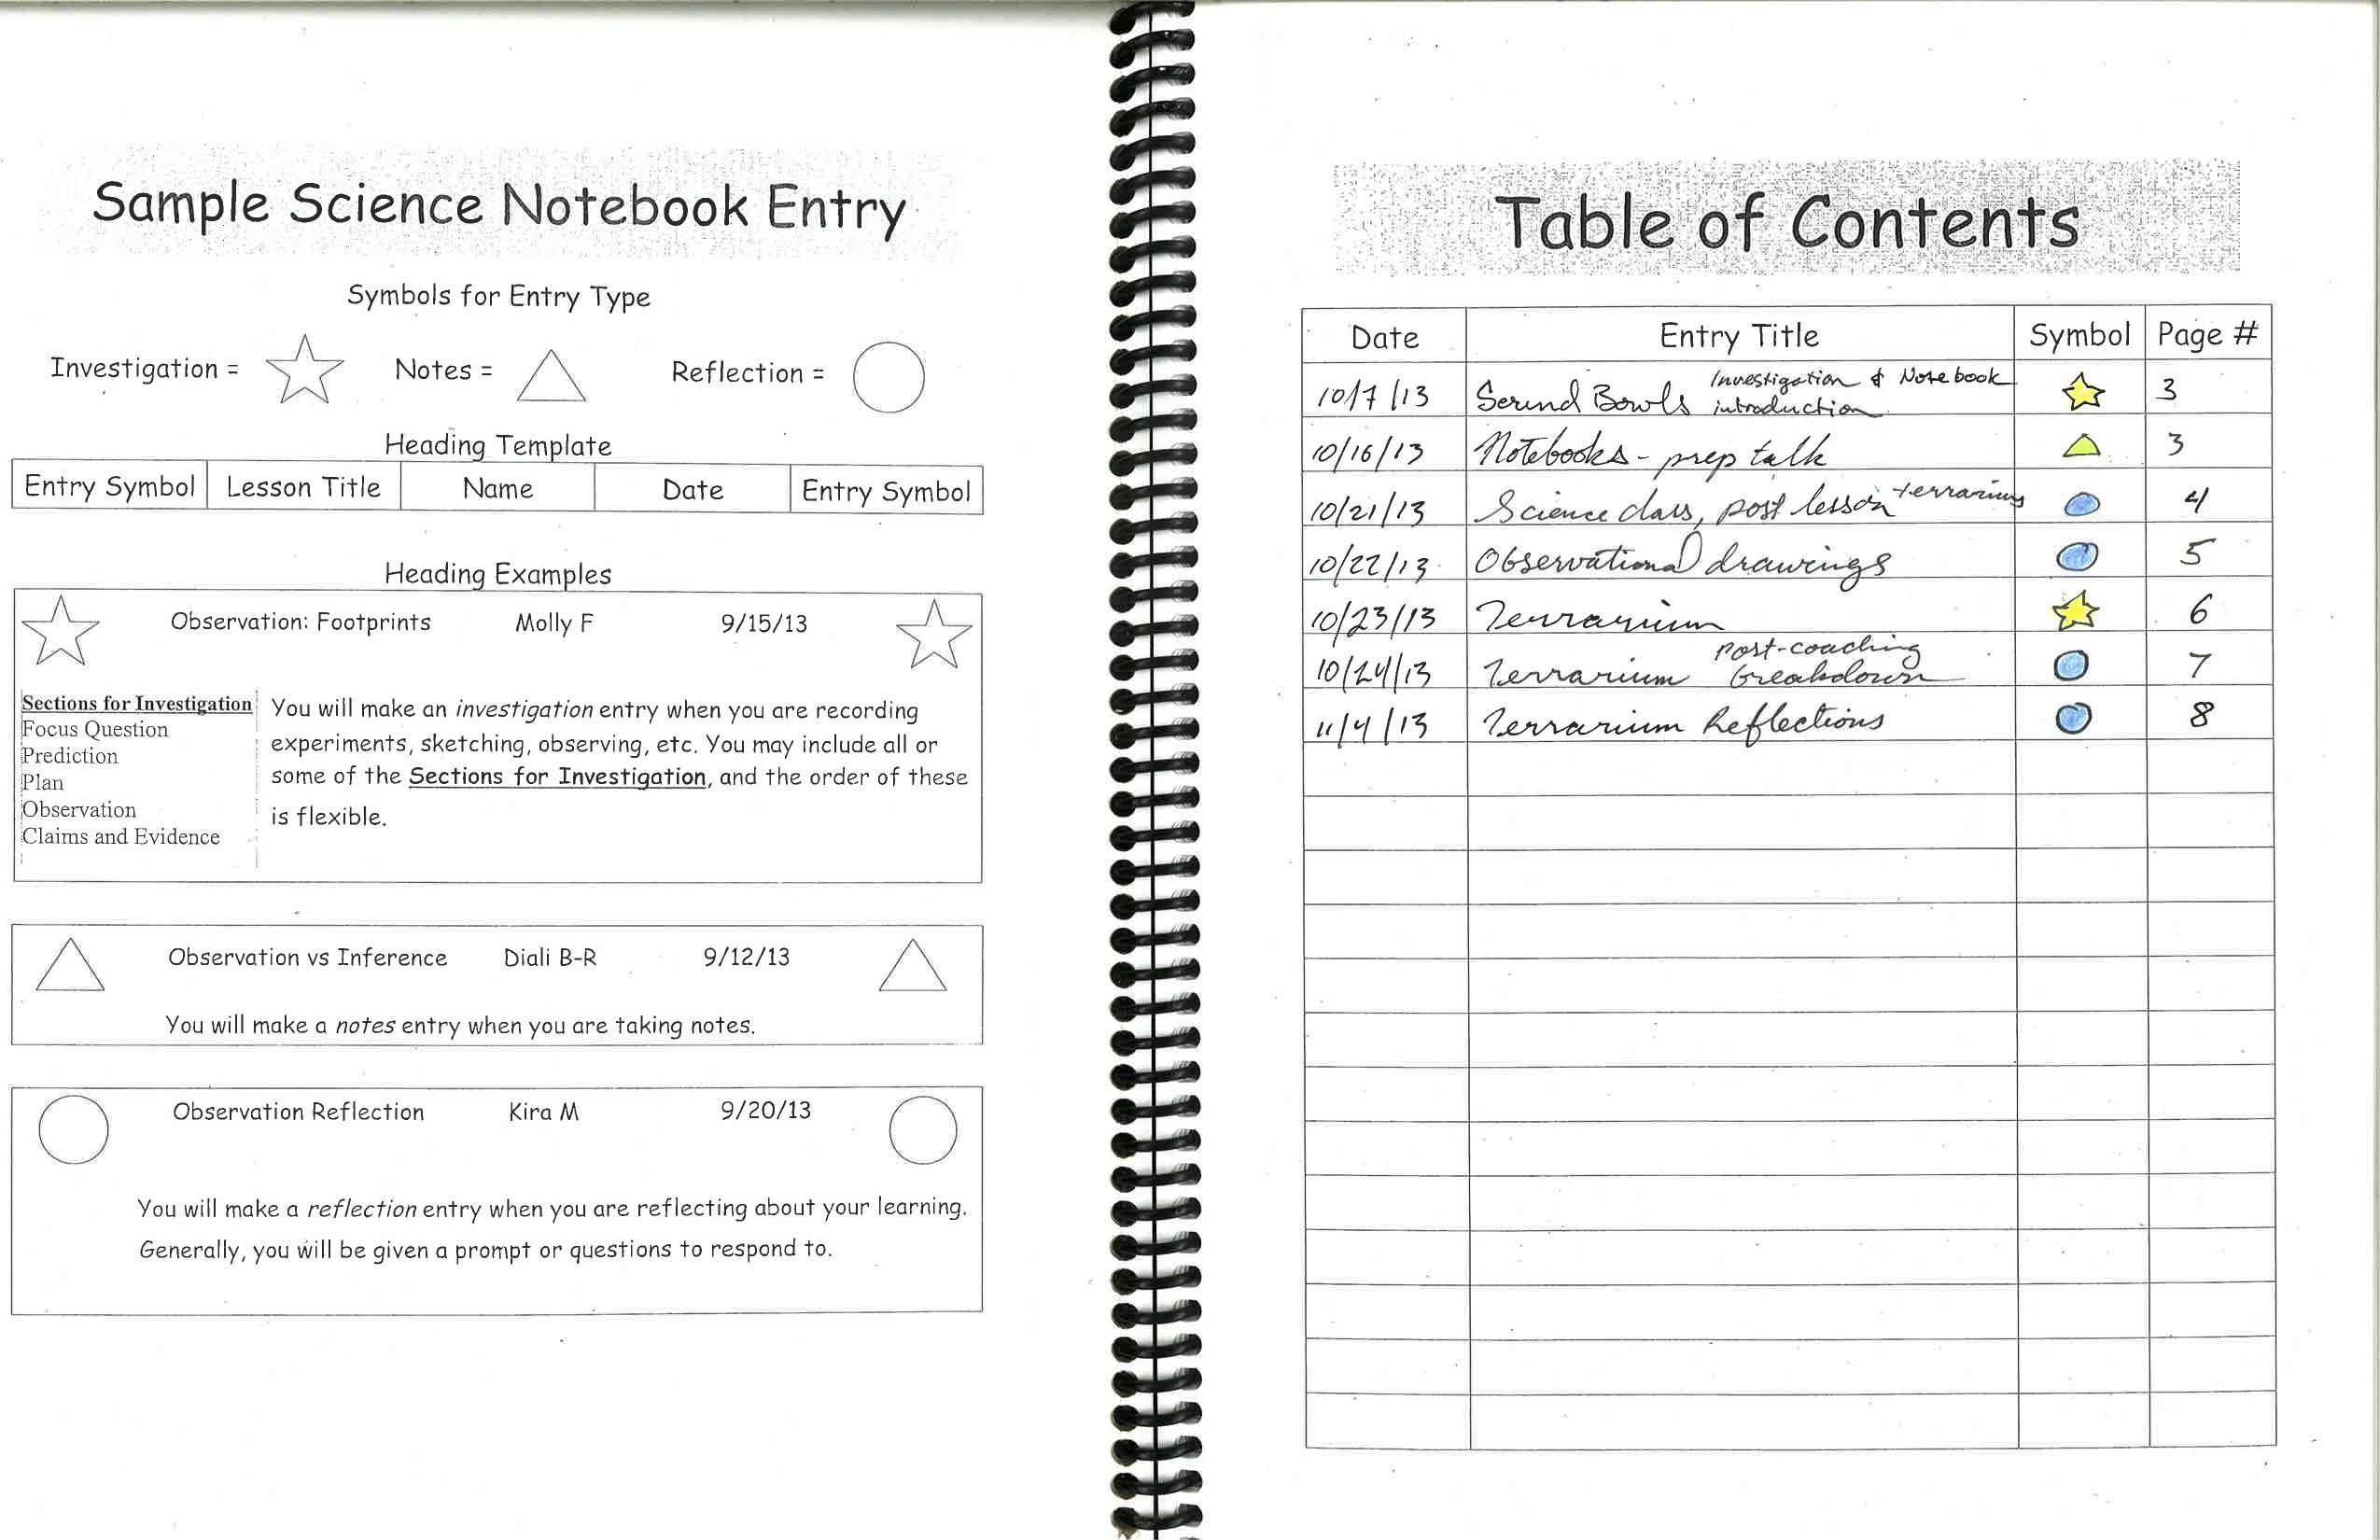 Organizing Your Science Notebook